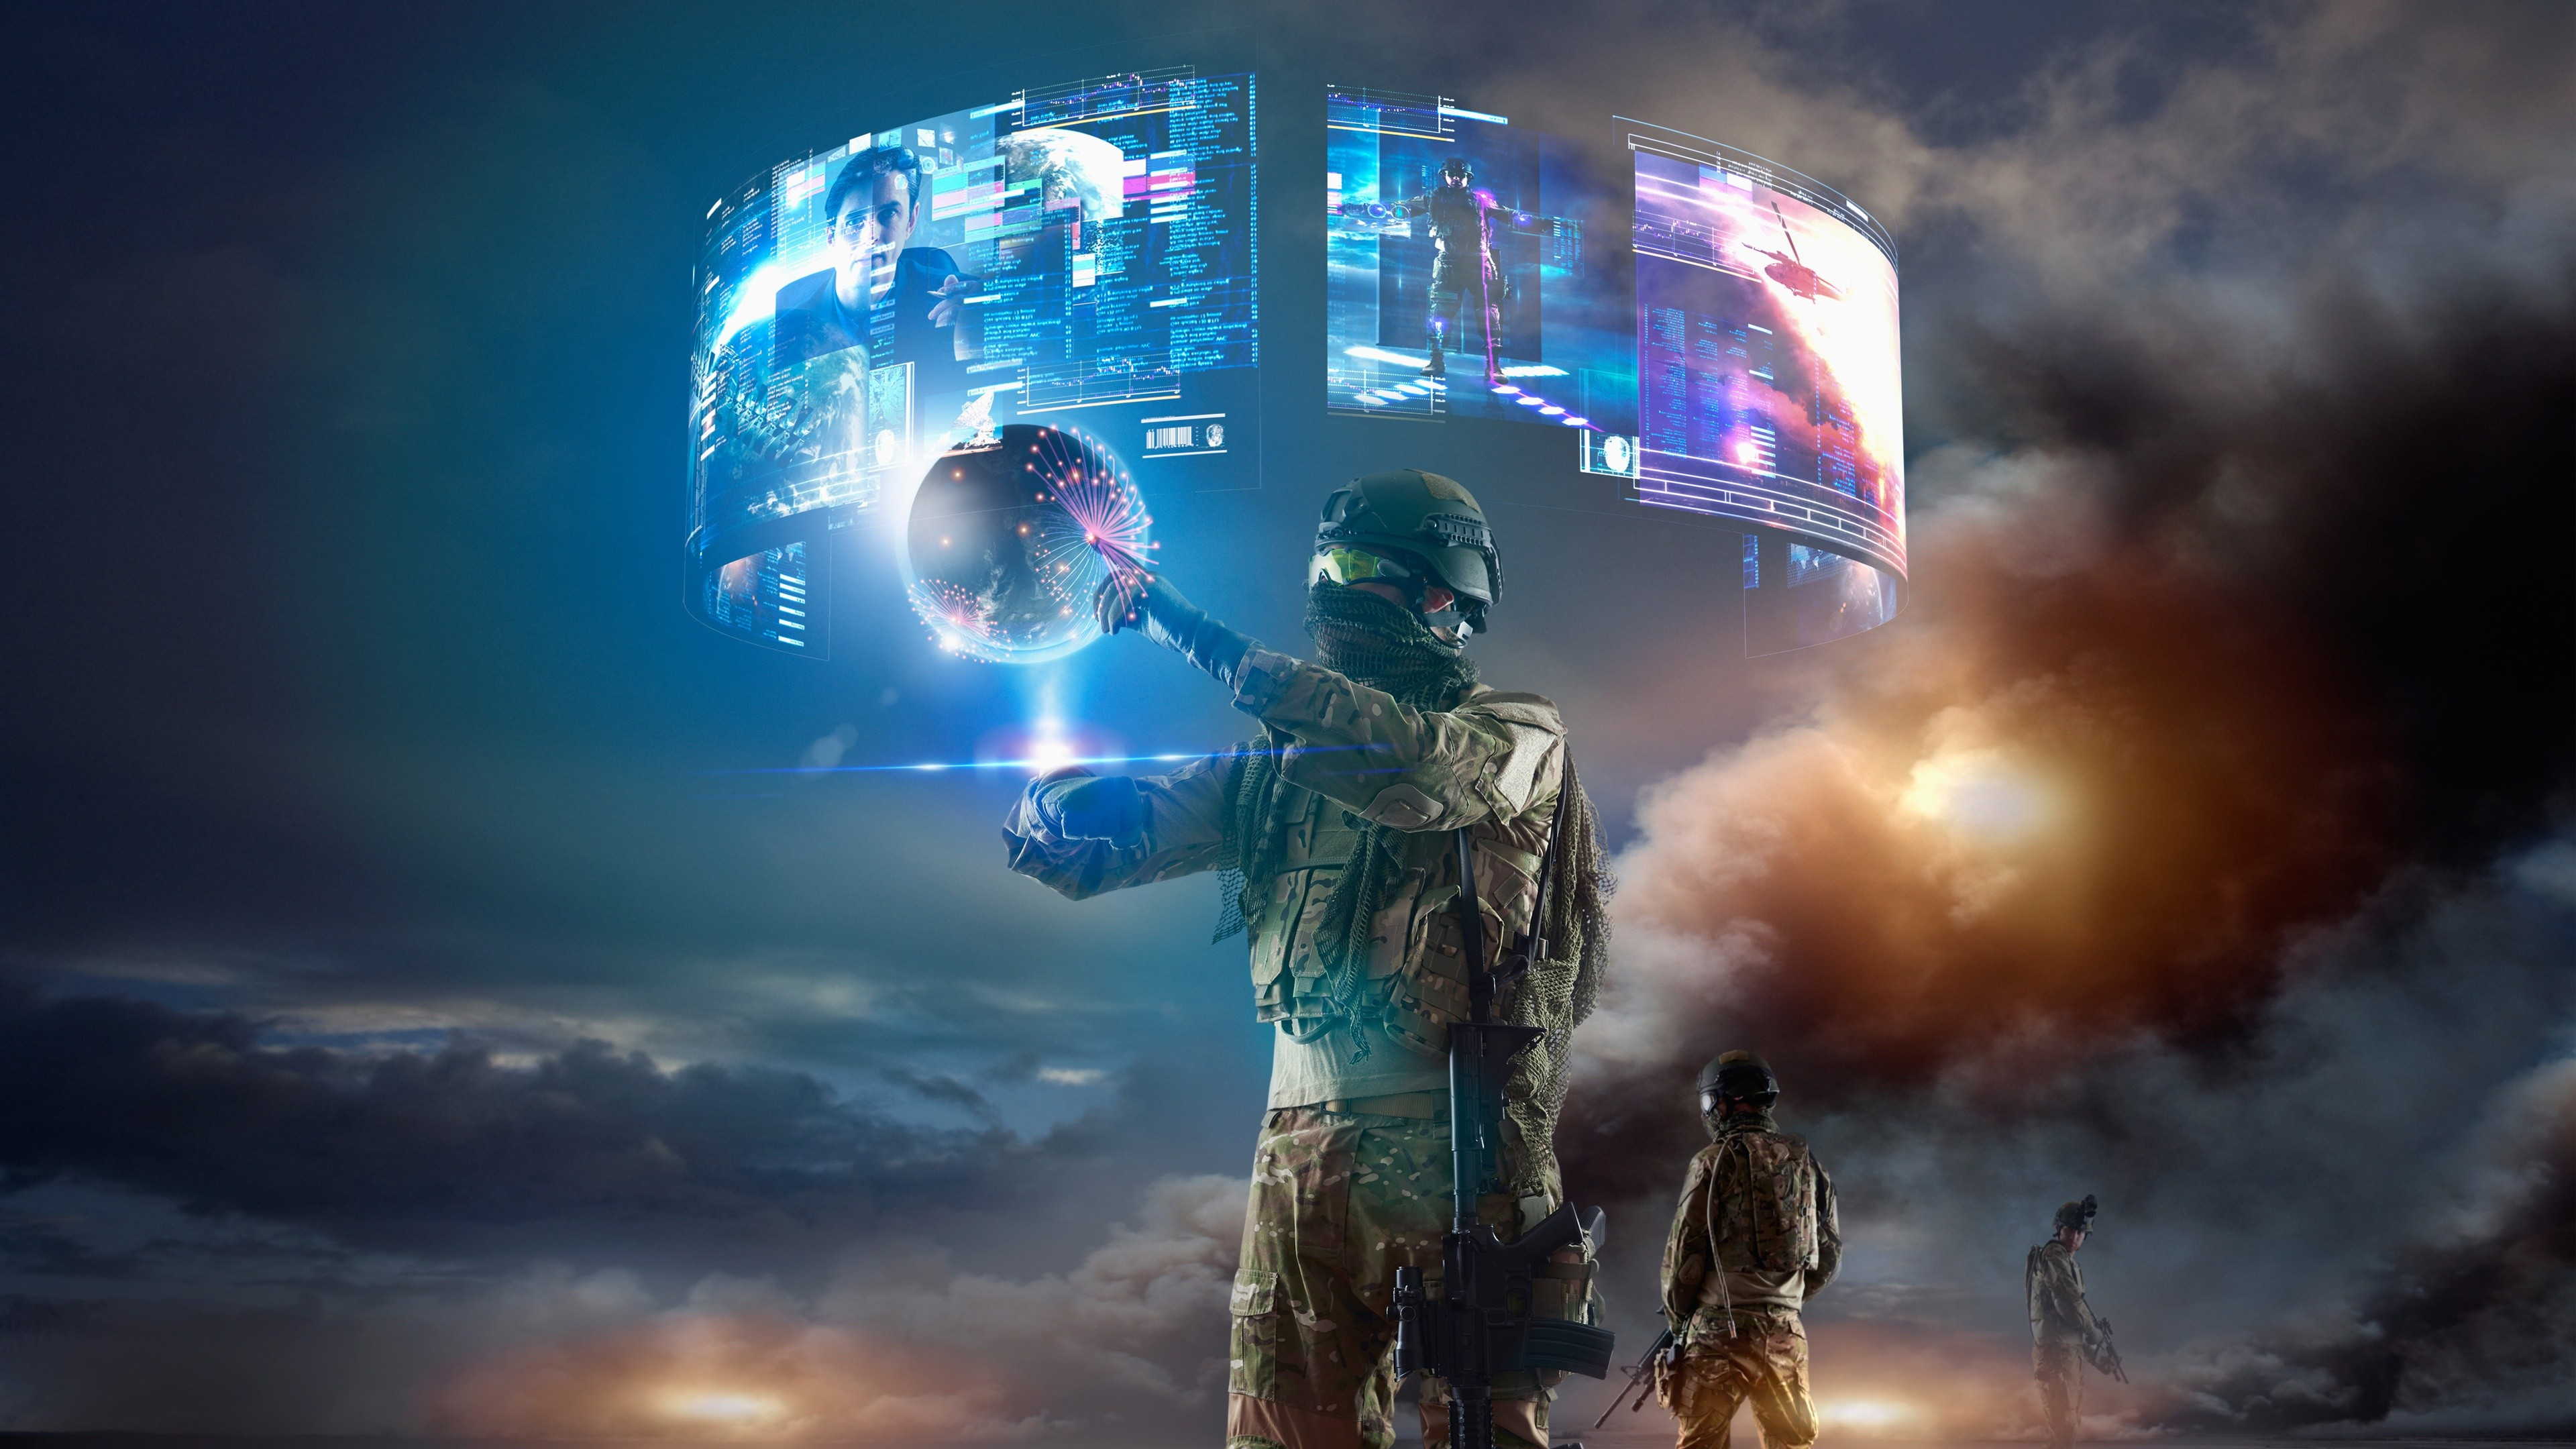 Wallpaper Soldier Virtual Reality Vr Military Games 11735